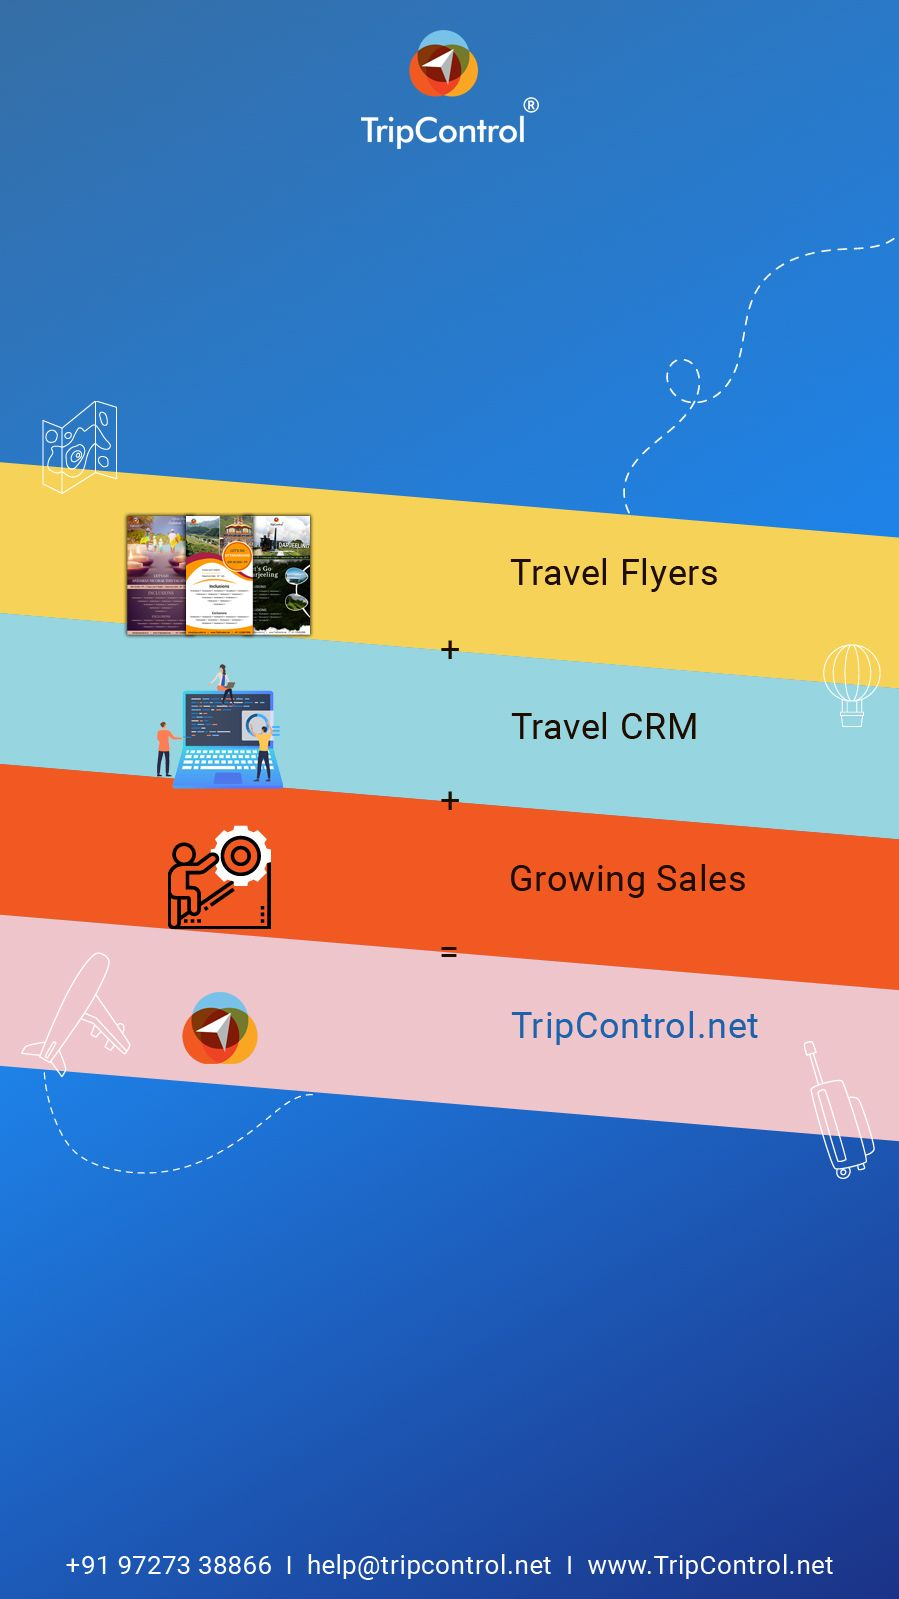 Do you know what TripControl is? Know more TripControl